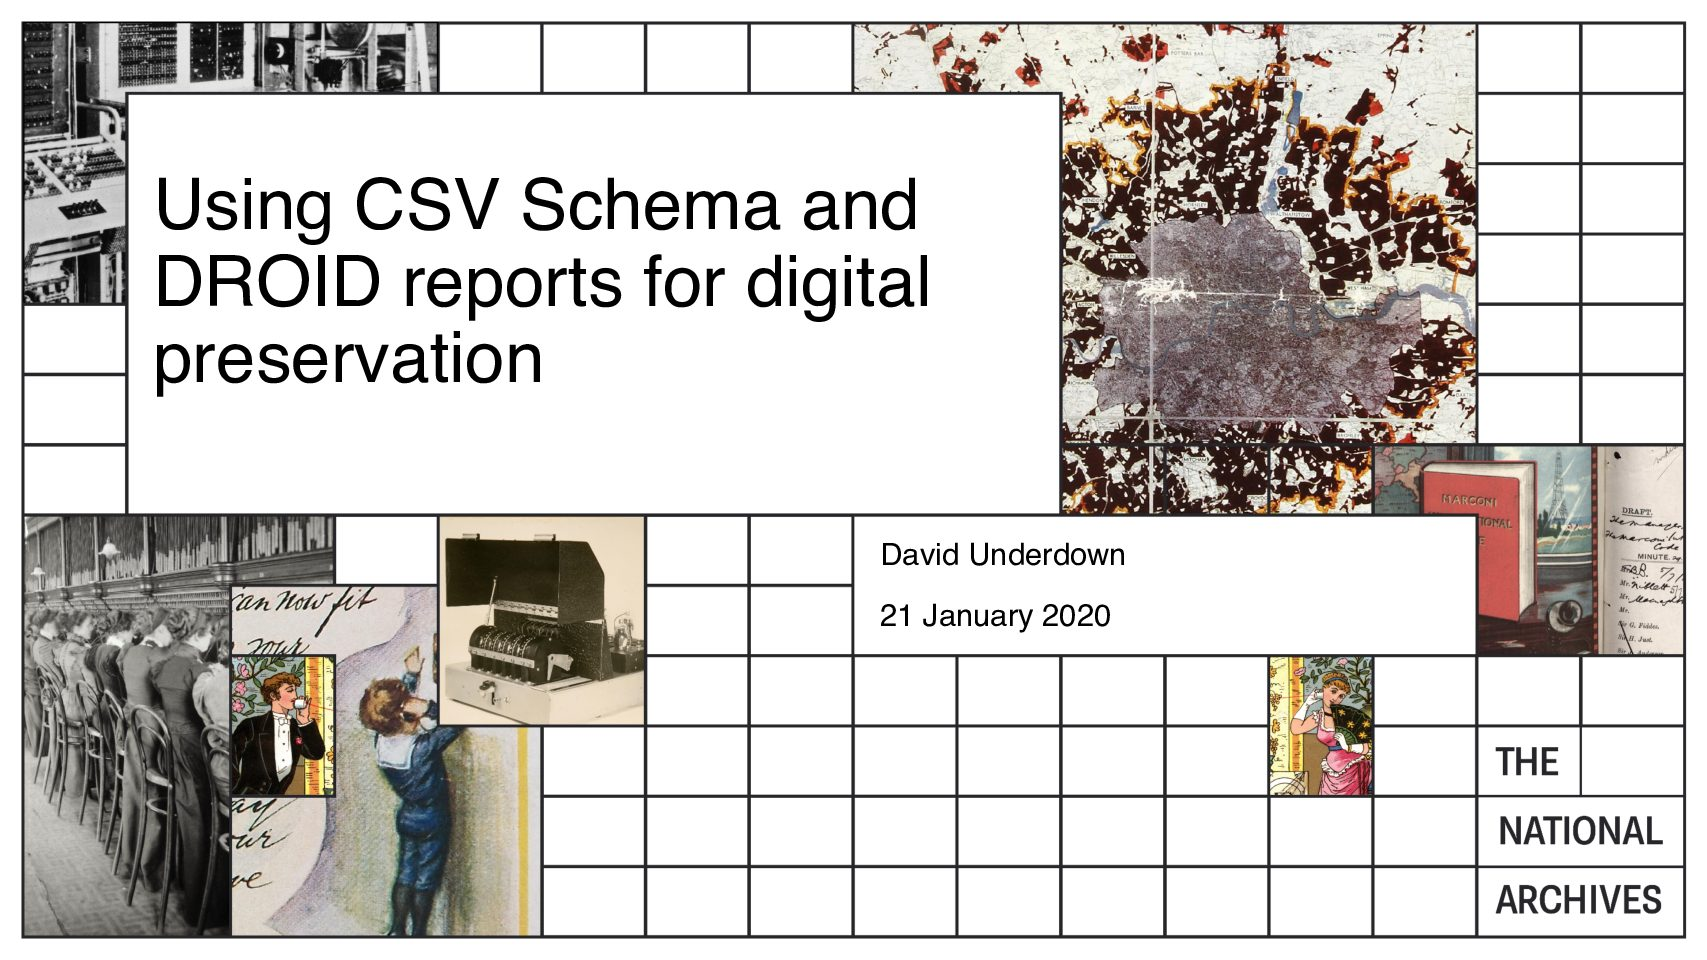 Using CSV Schema and DROID reports for digital preservation